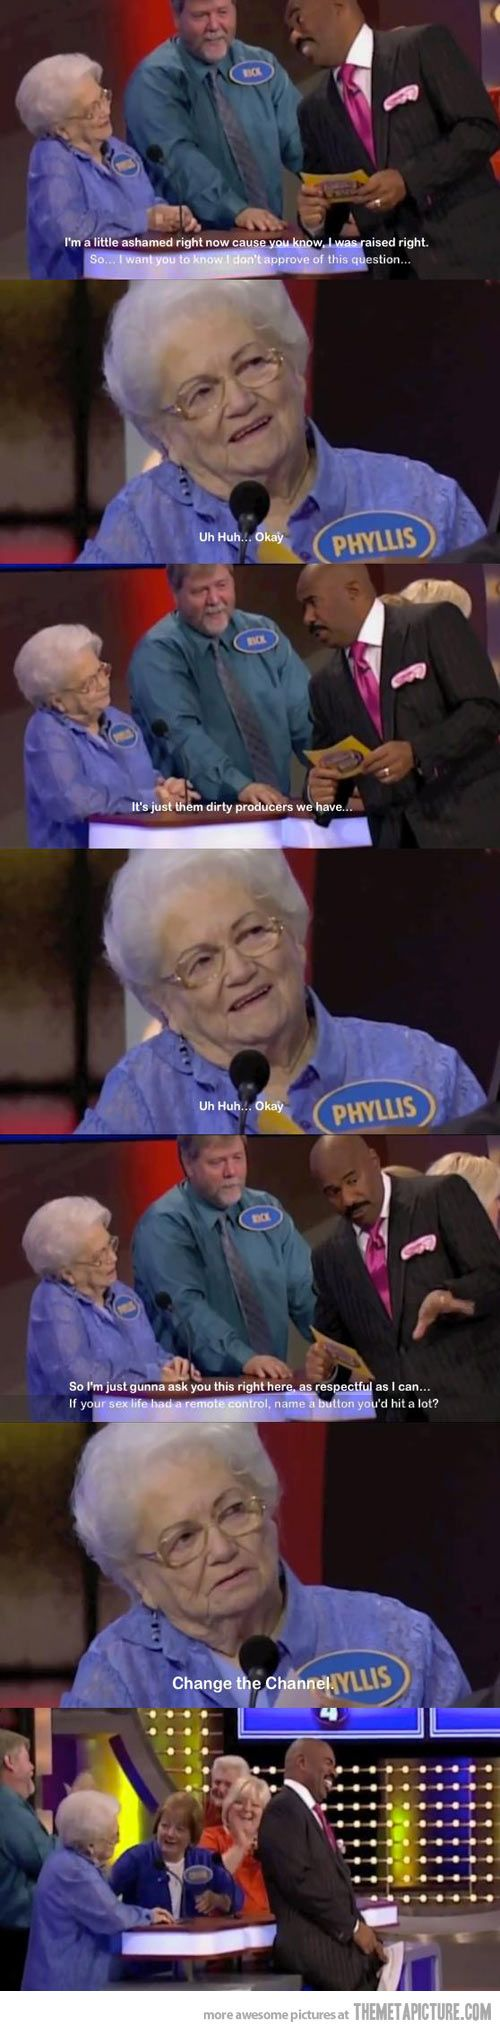 Old lady keepin it real! Amazing haha